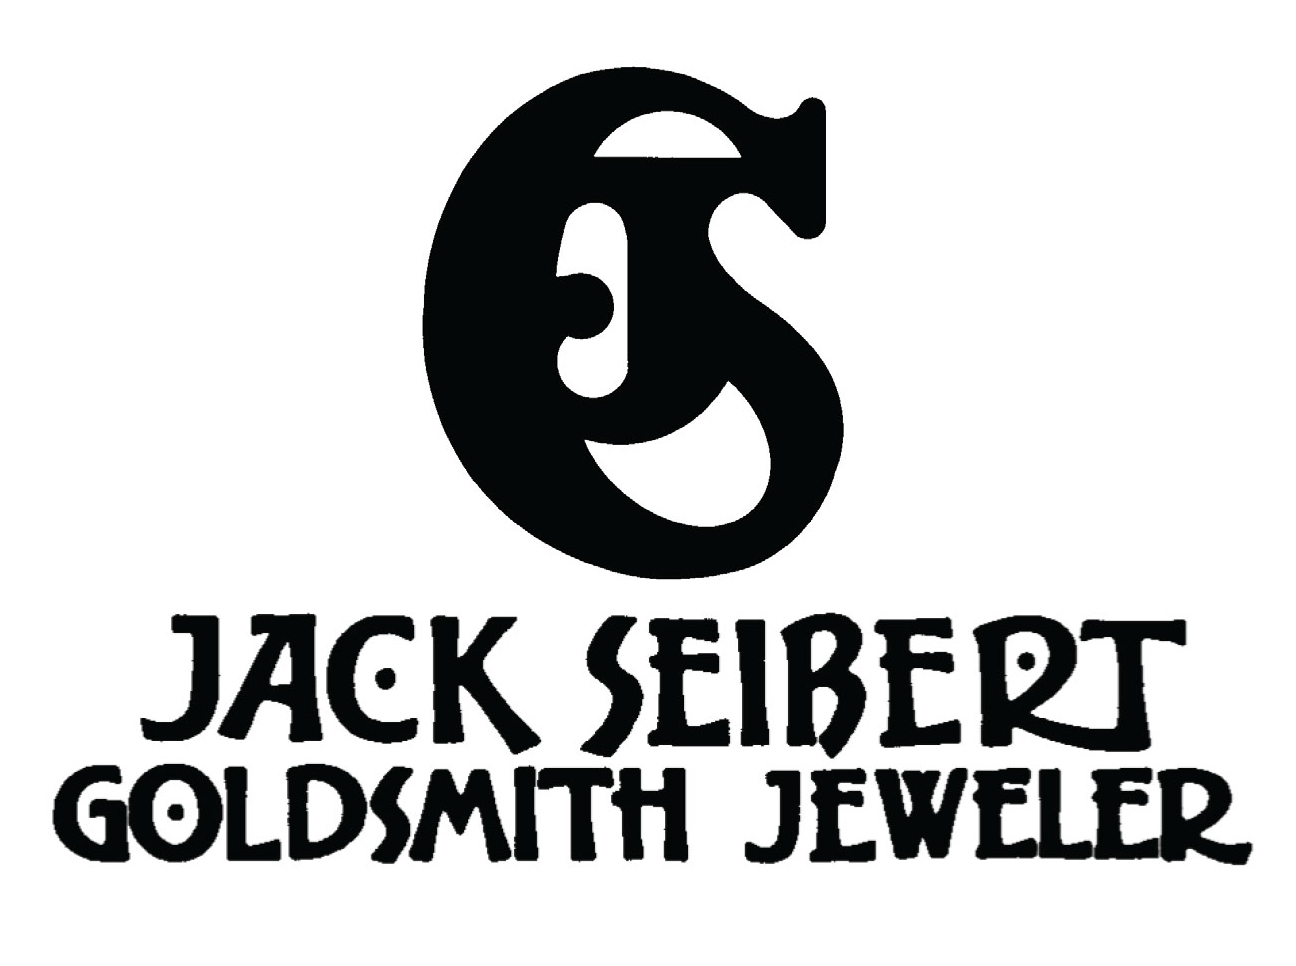 Jack Seibert Goldsmith & Jeweler